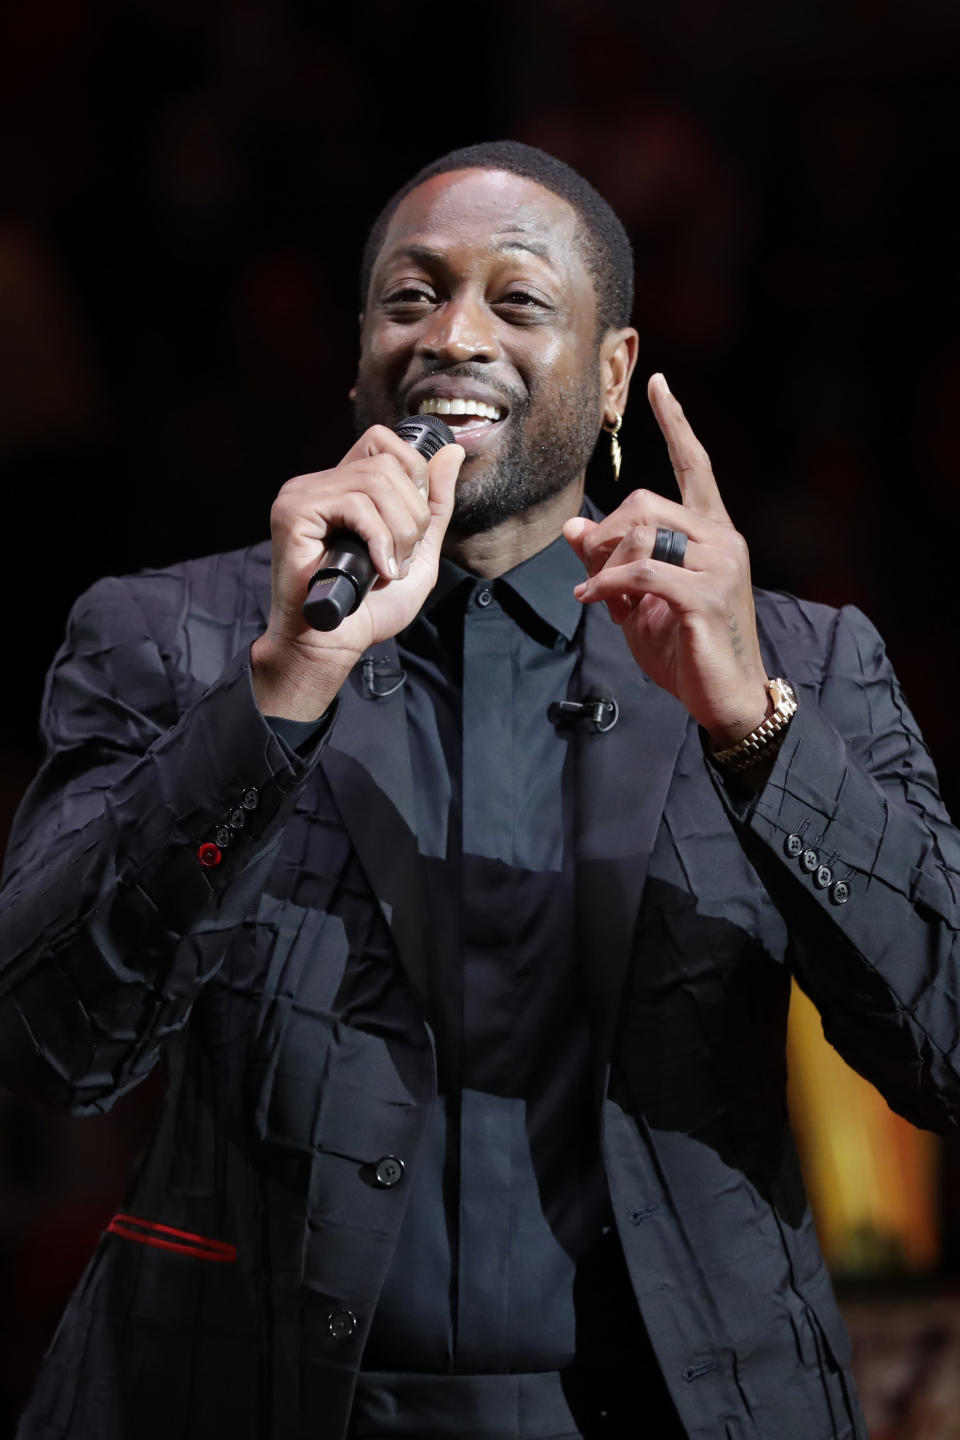 Former Miami Heat guard Dwyane Wade talks during a jersey retirement ceremony at halftime of an NBA basketball game between the Heat and the Cleveland Cavaliers, Saturday, Feb. 22, 2020, in Miami. (AP Photo/Wilfredo Lee)